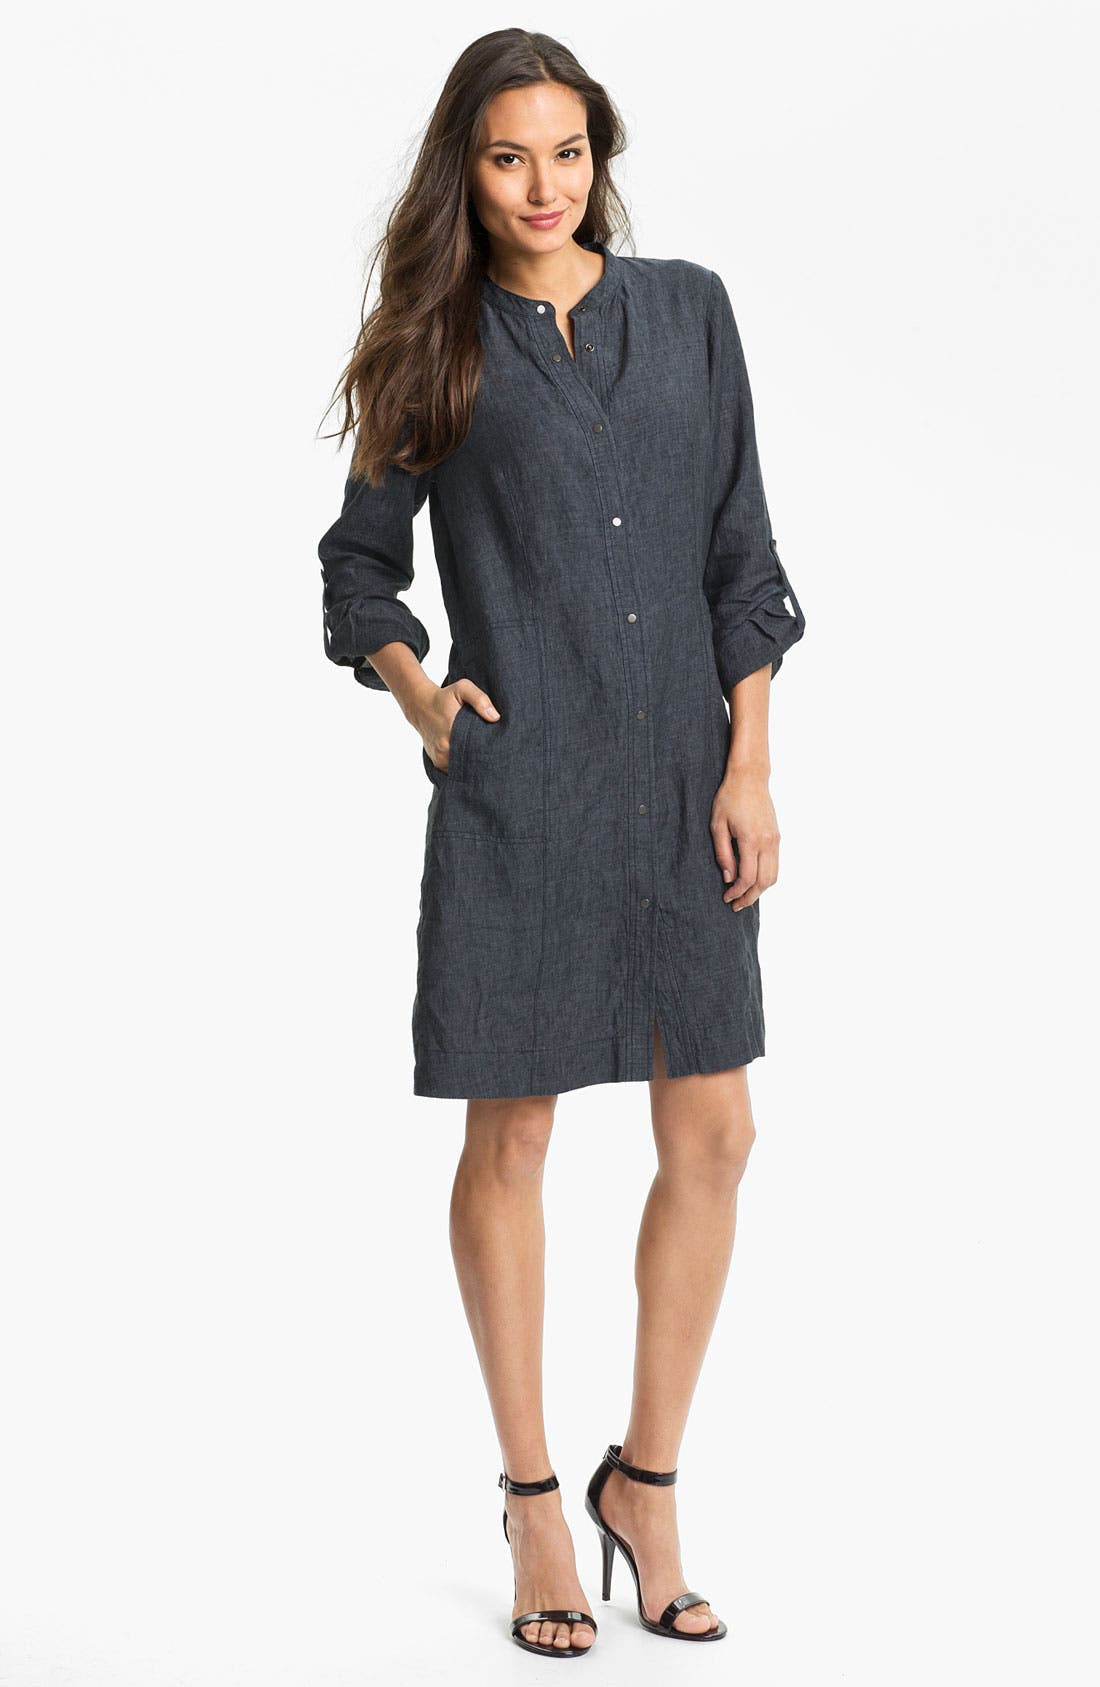 Alternate Image 1 Selected - Eileen Fisher Banded Collar Shirtdress (Online Only)